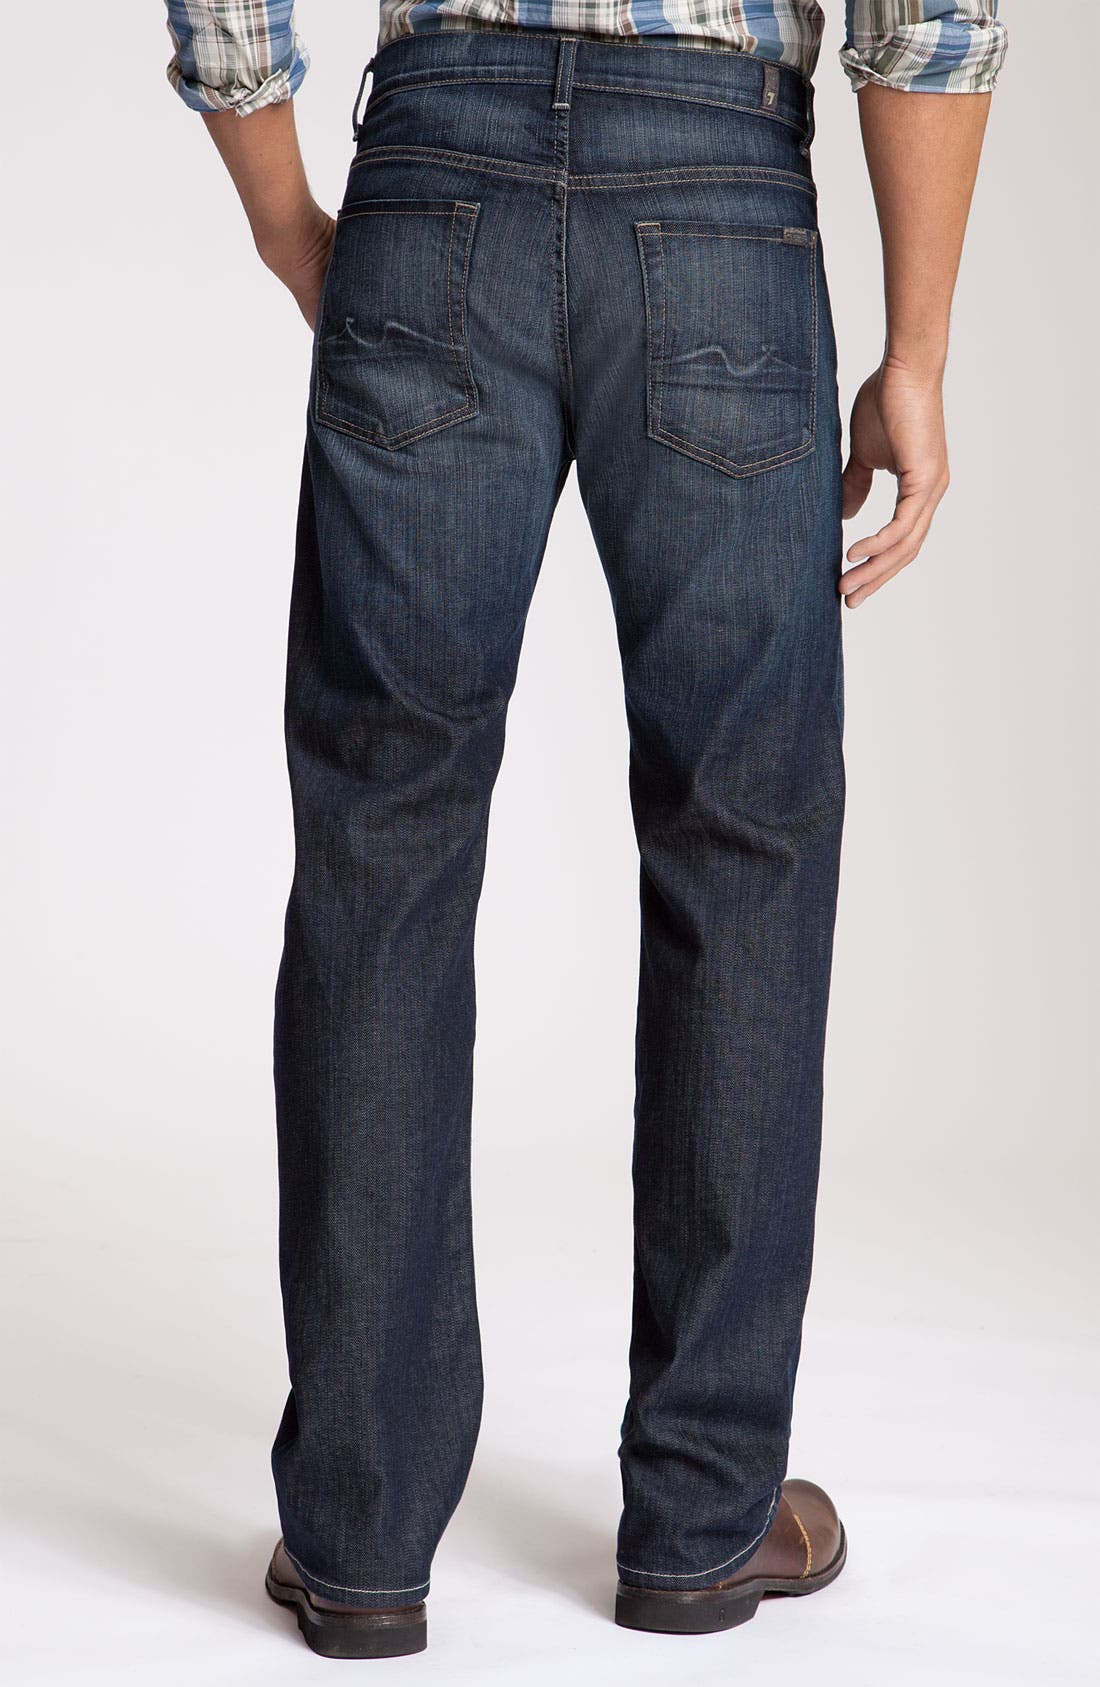 Main Image - 7 For All Mankind® 'Austyn' Relaxed Straight Leg Jeans (Nite Shadow)